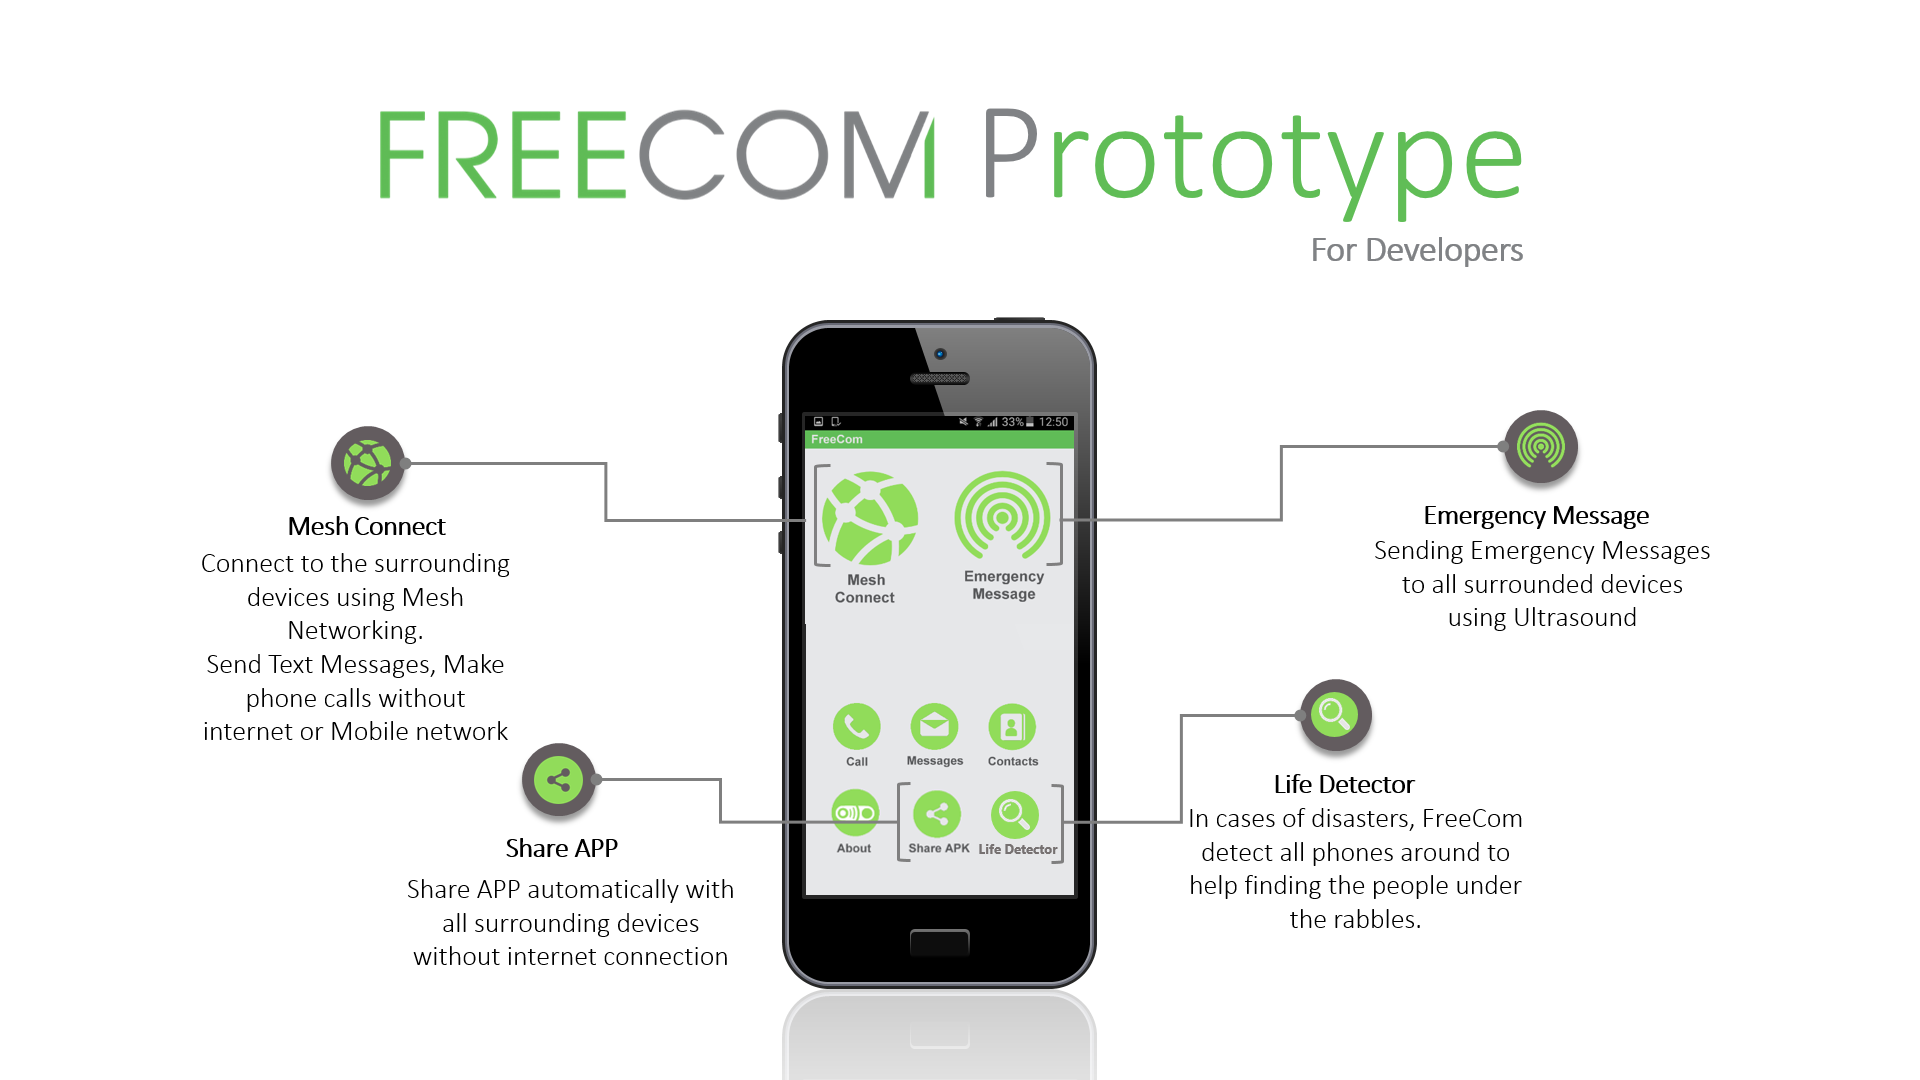 freecom-prototype